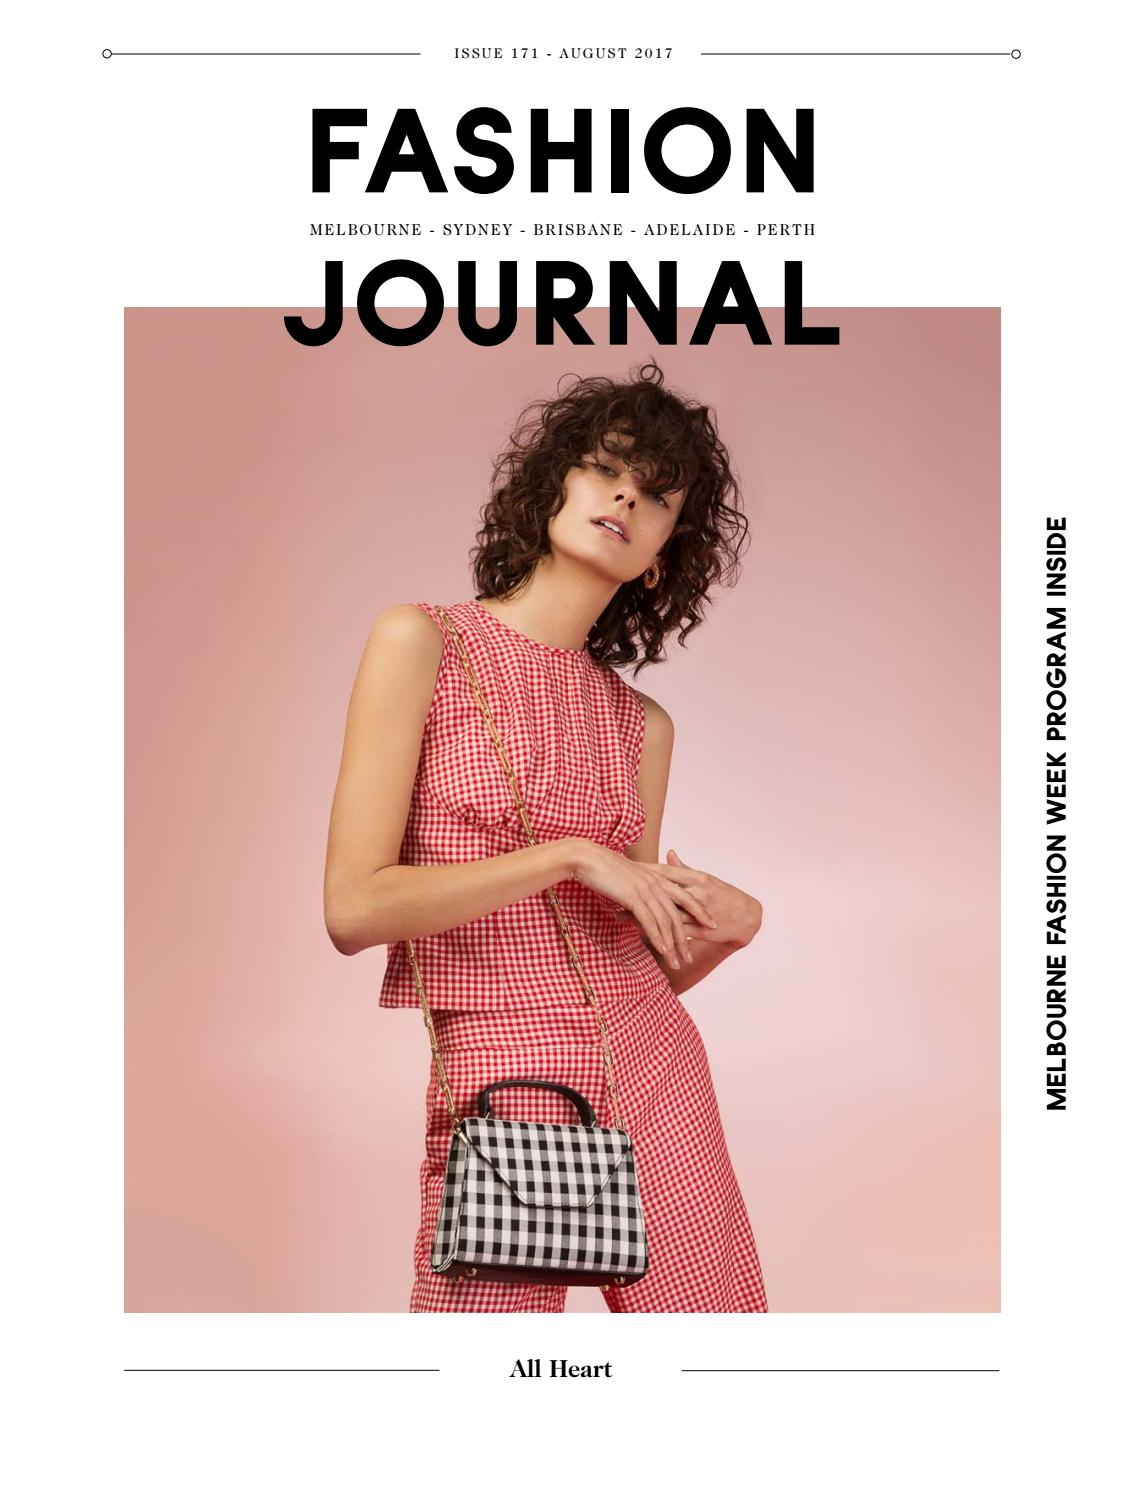 7845341cc72c1 Fashion Journal 171 by Furst Media - issuu